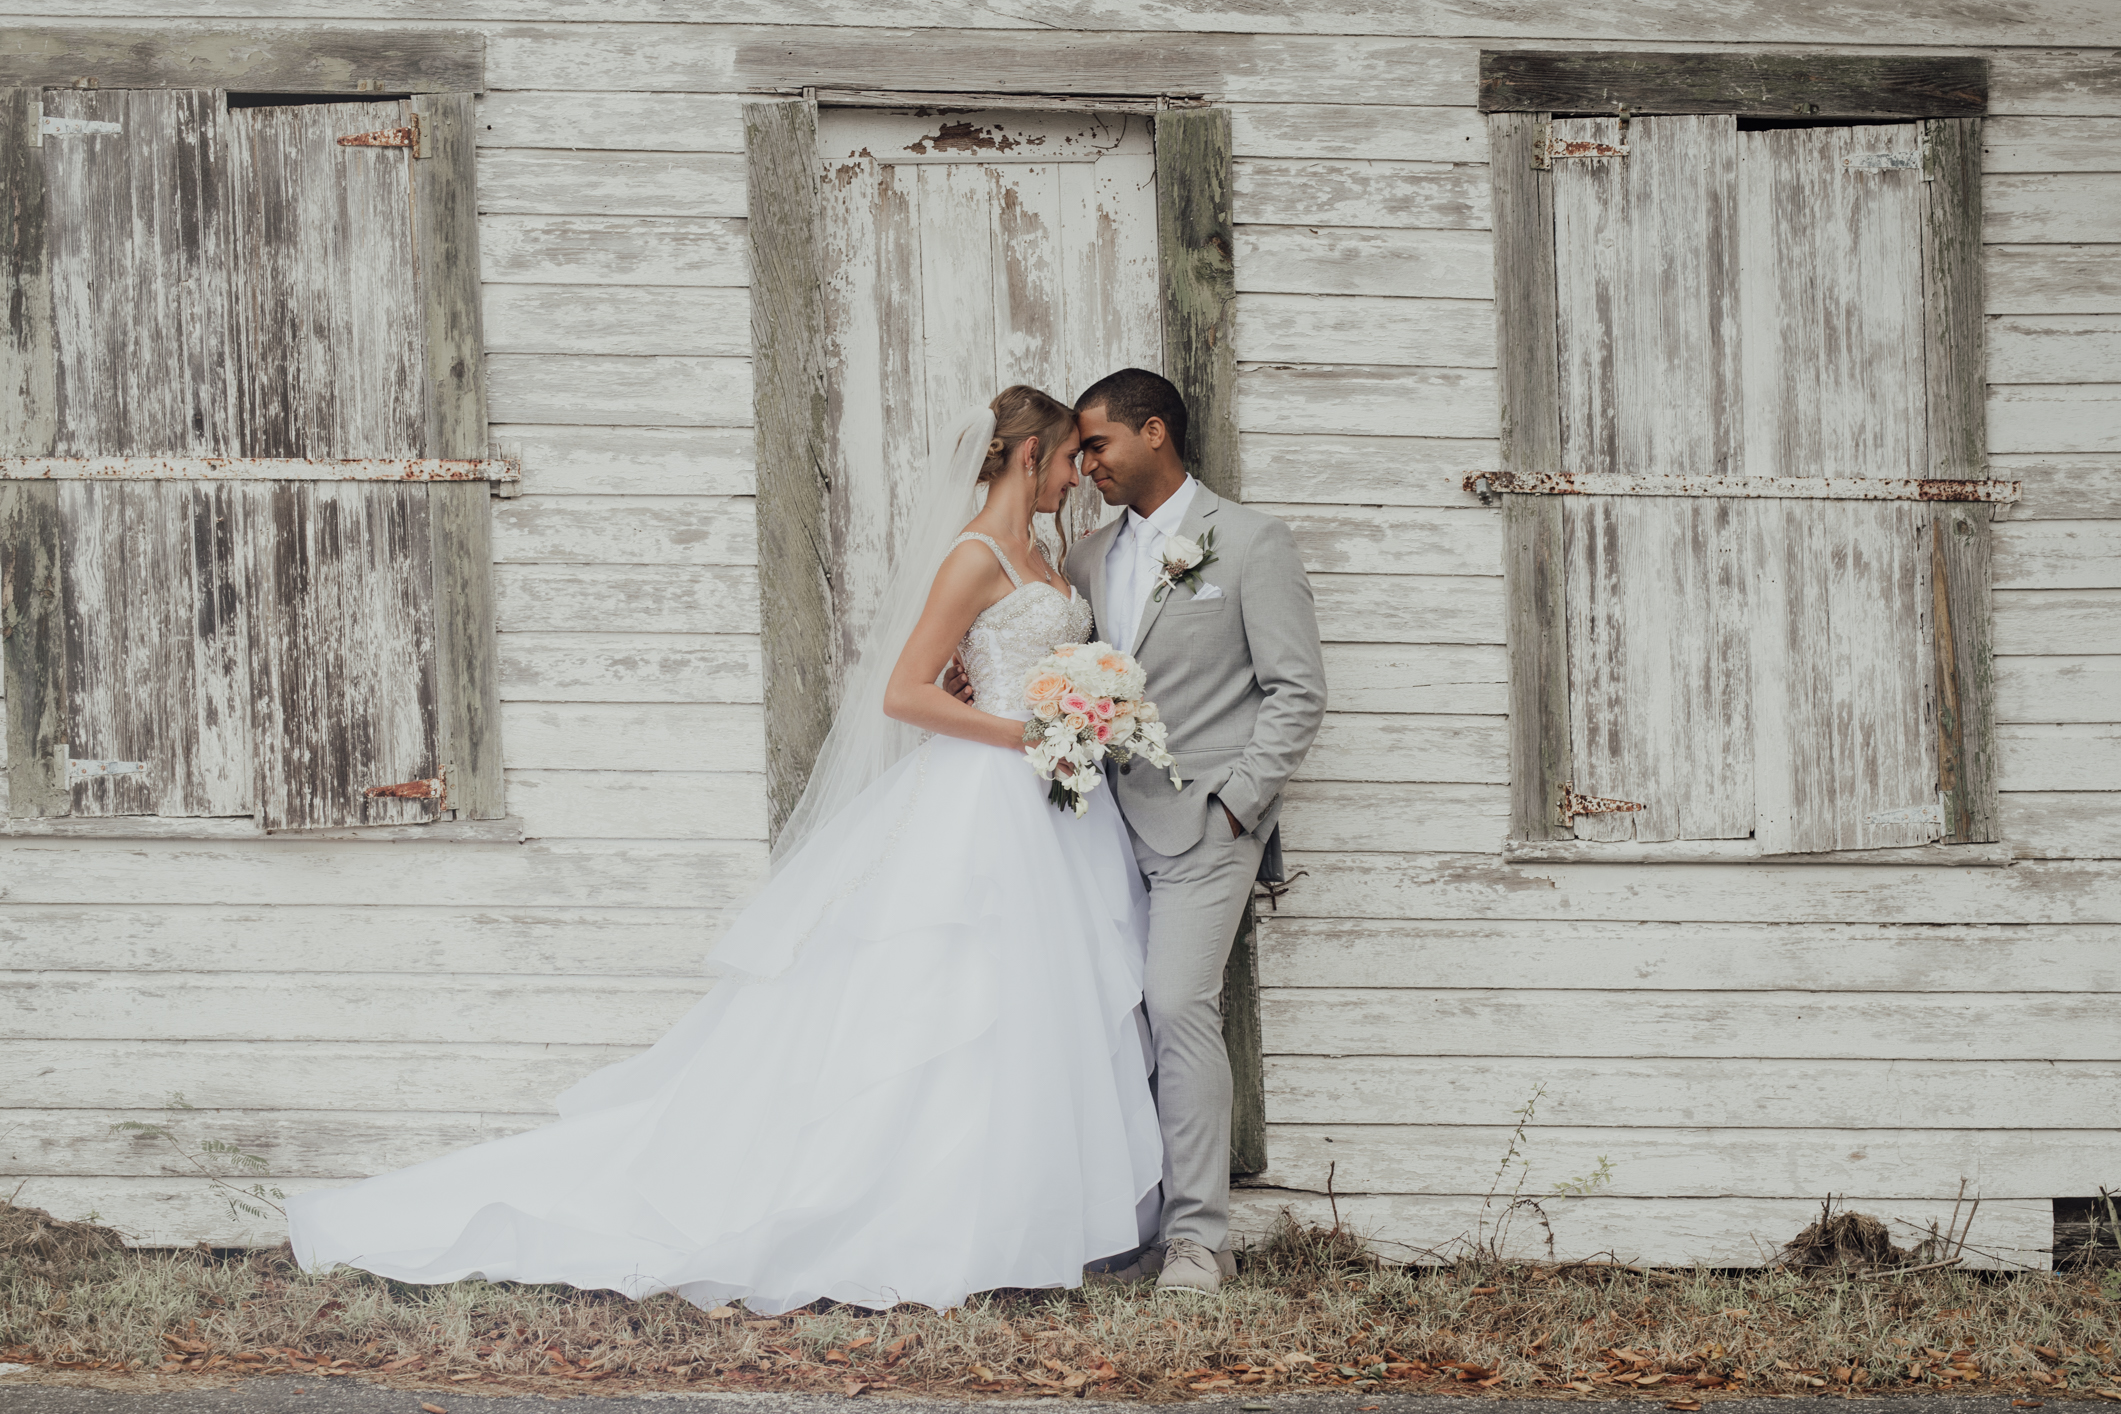 Cool and Modern Bridal Bliss In The Cayman Islands, Photography by Rebecca Davidson Photography for www.adrianaweddings.com